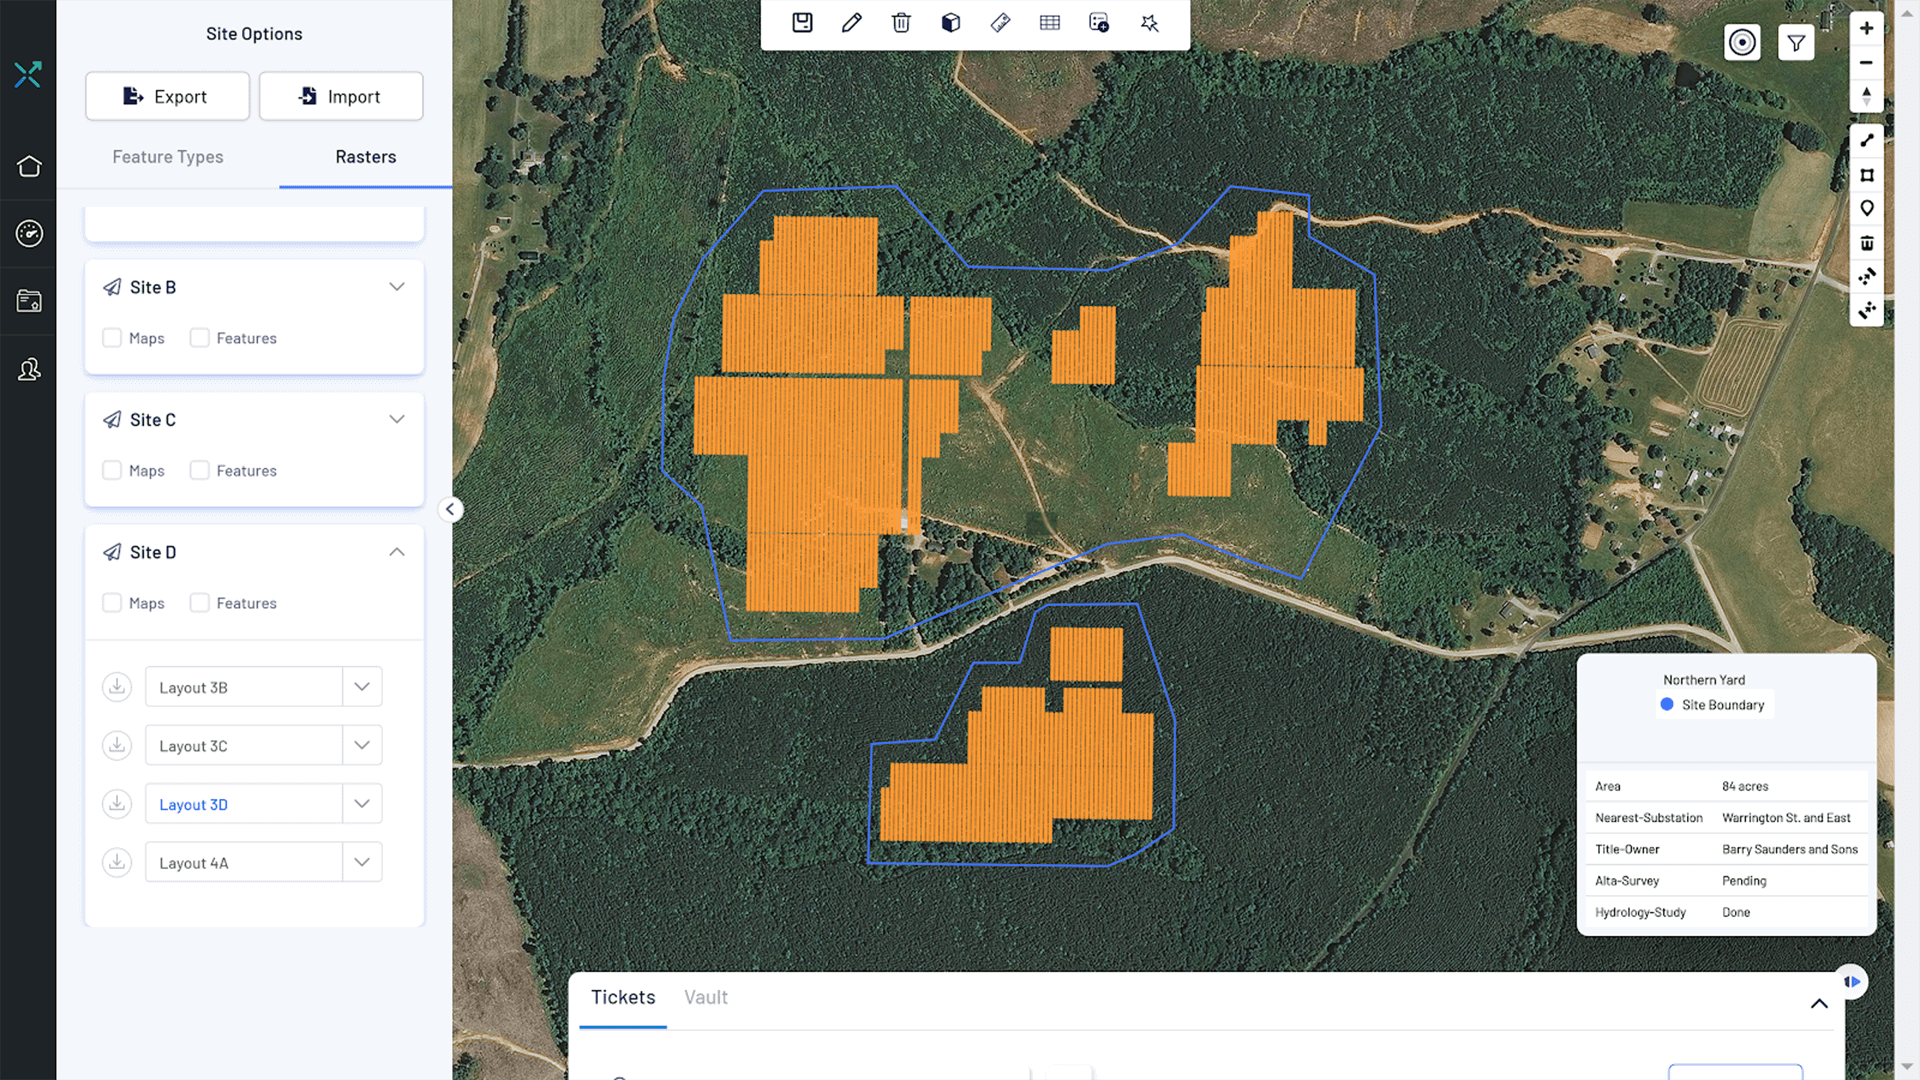 Solar plant PV design layout and drone data for topography